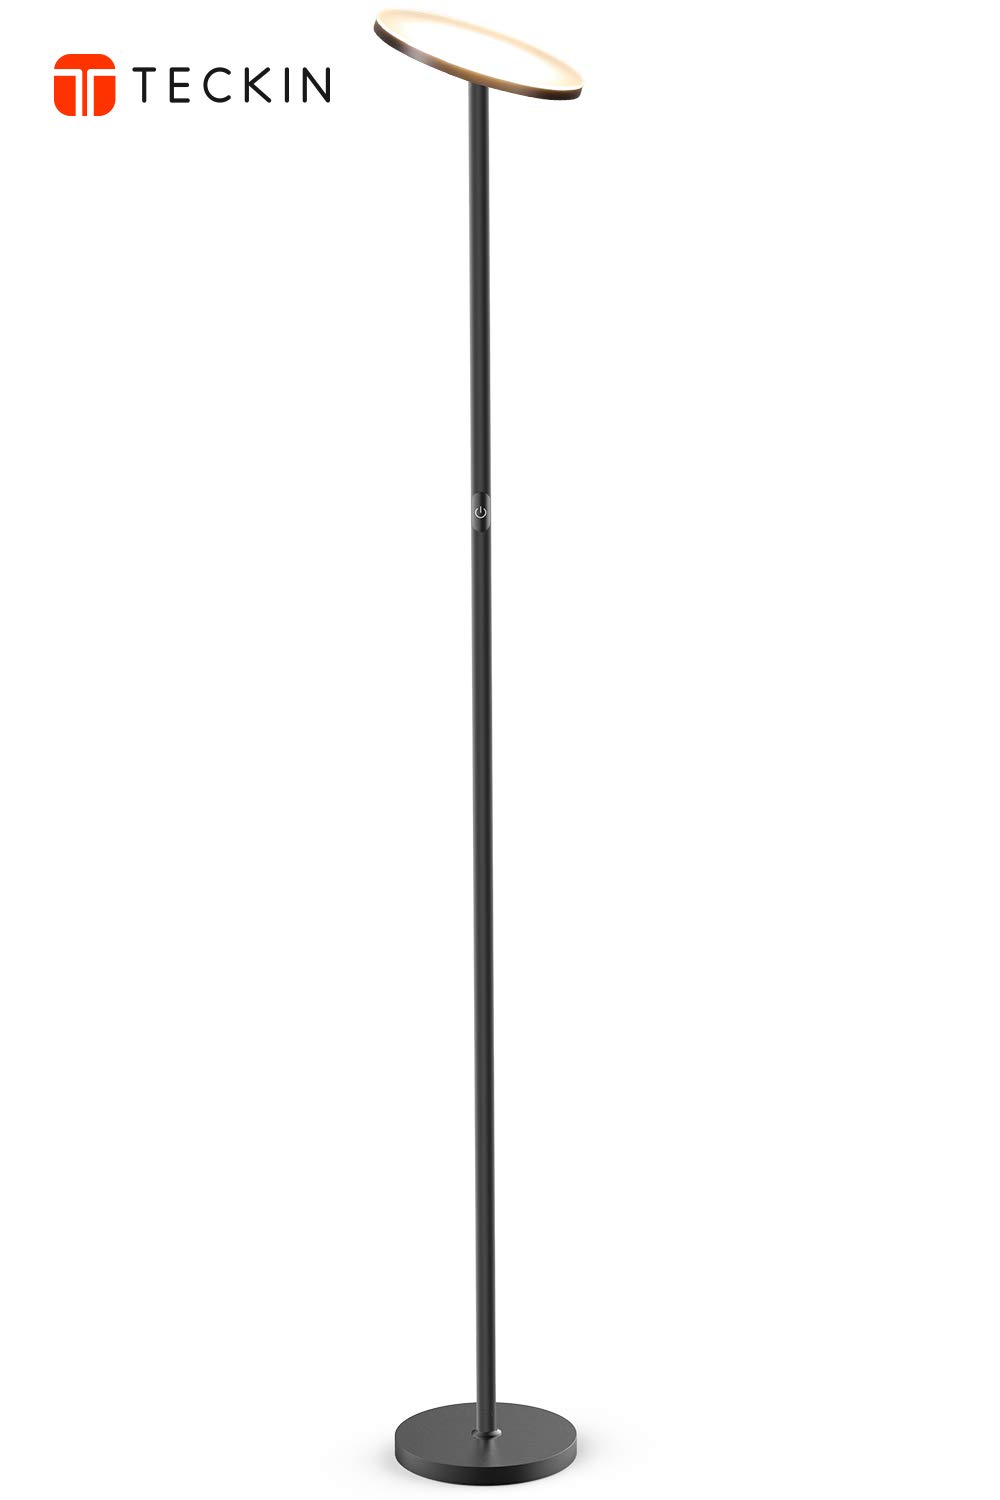 Floor Lamp, LED Torchiere Floor lamp, Tall Standing Uplight Industrial Floor Lamps Stepless Dimmable Modern Pole Floor Light for Living Room Offices Bedroom, TECKIN Daylight Floor Lights Black